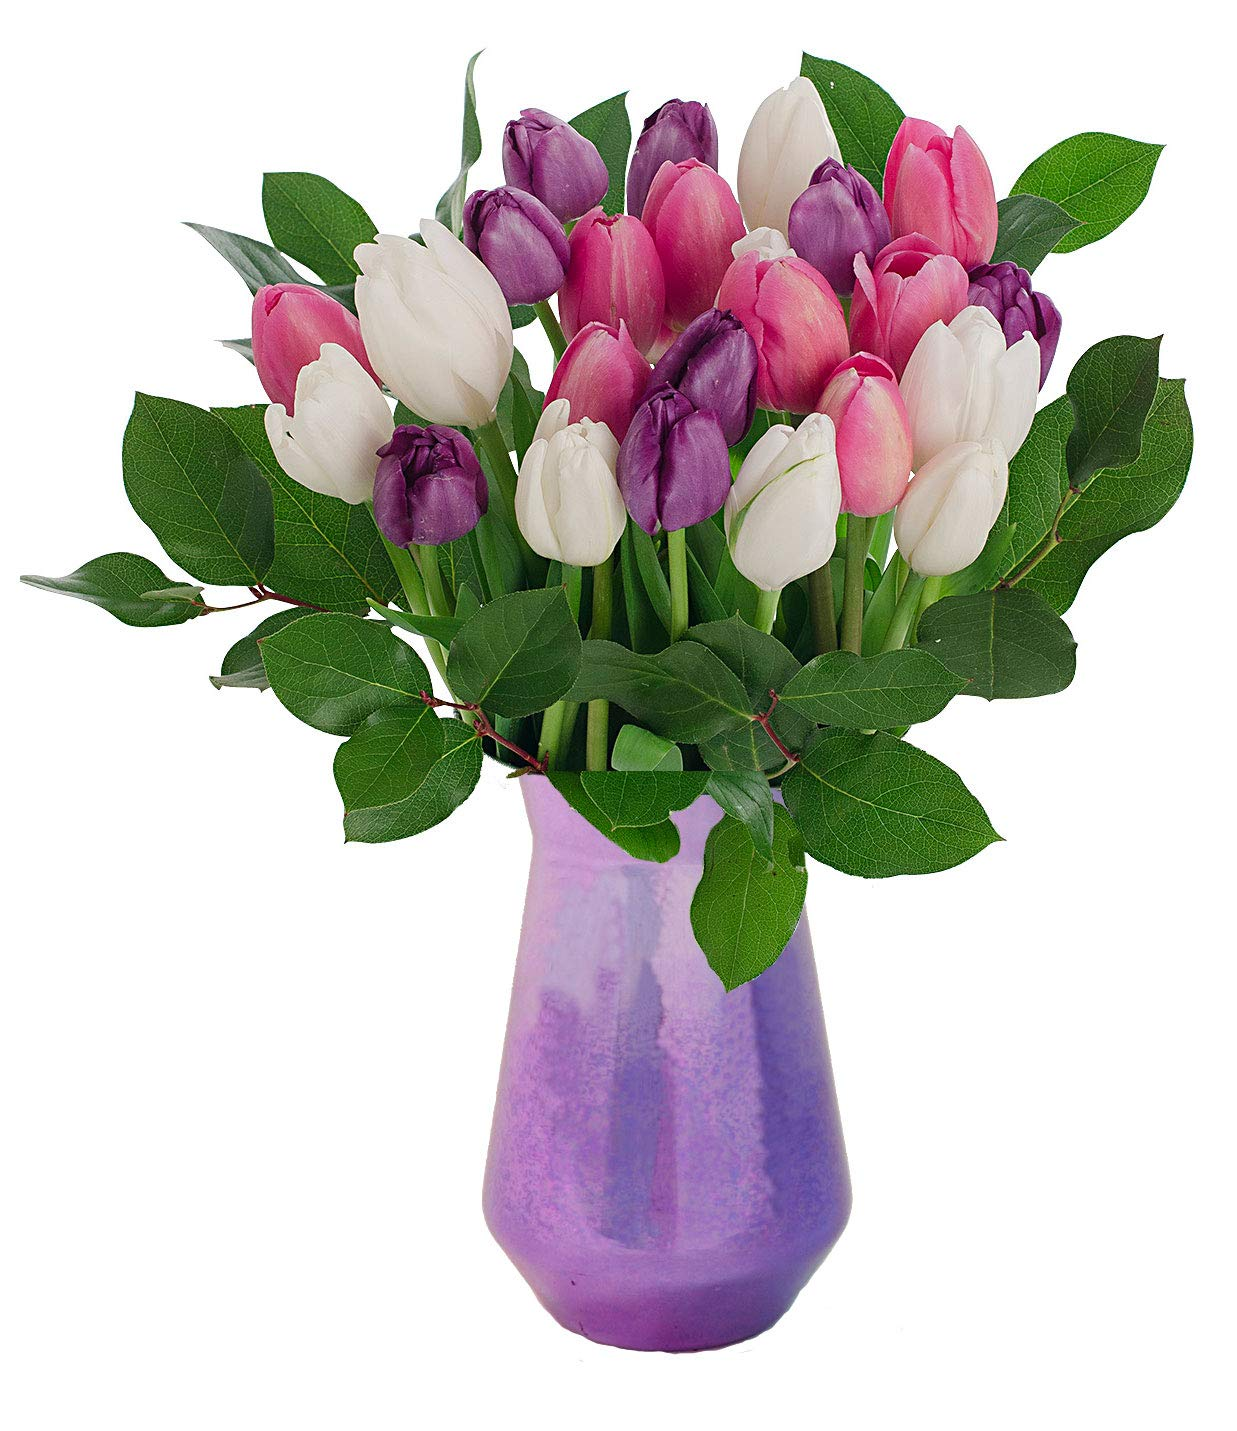 Stargazer Barn - The Duchess Bouquet - 2 Dozen Assorted Tulips With Vase - Farm Fresh by Stargazer Barn